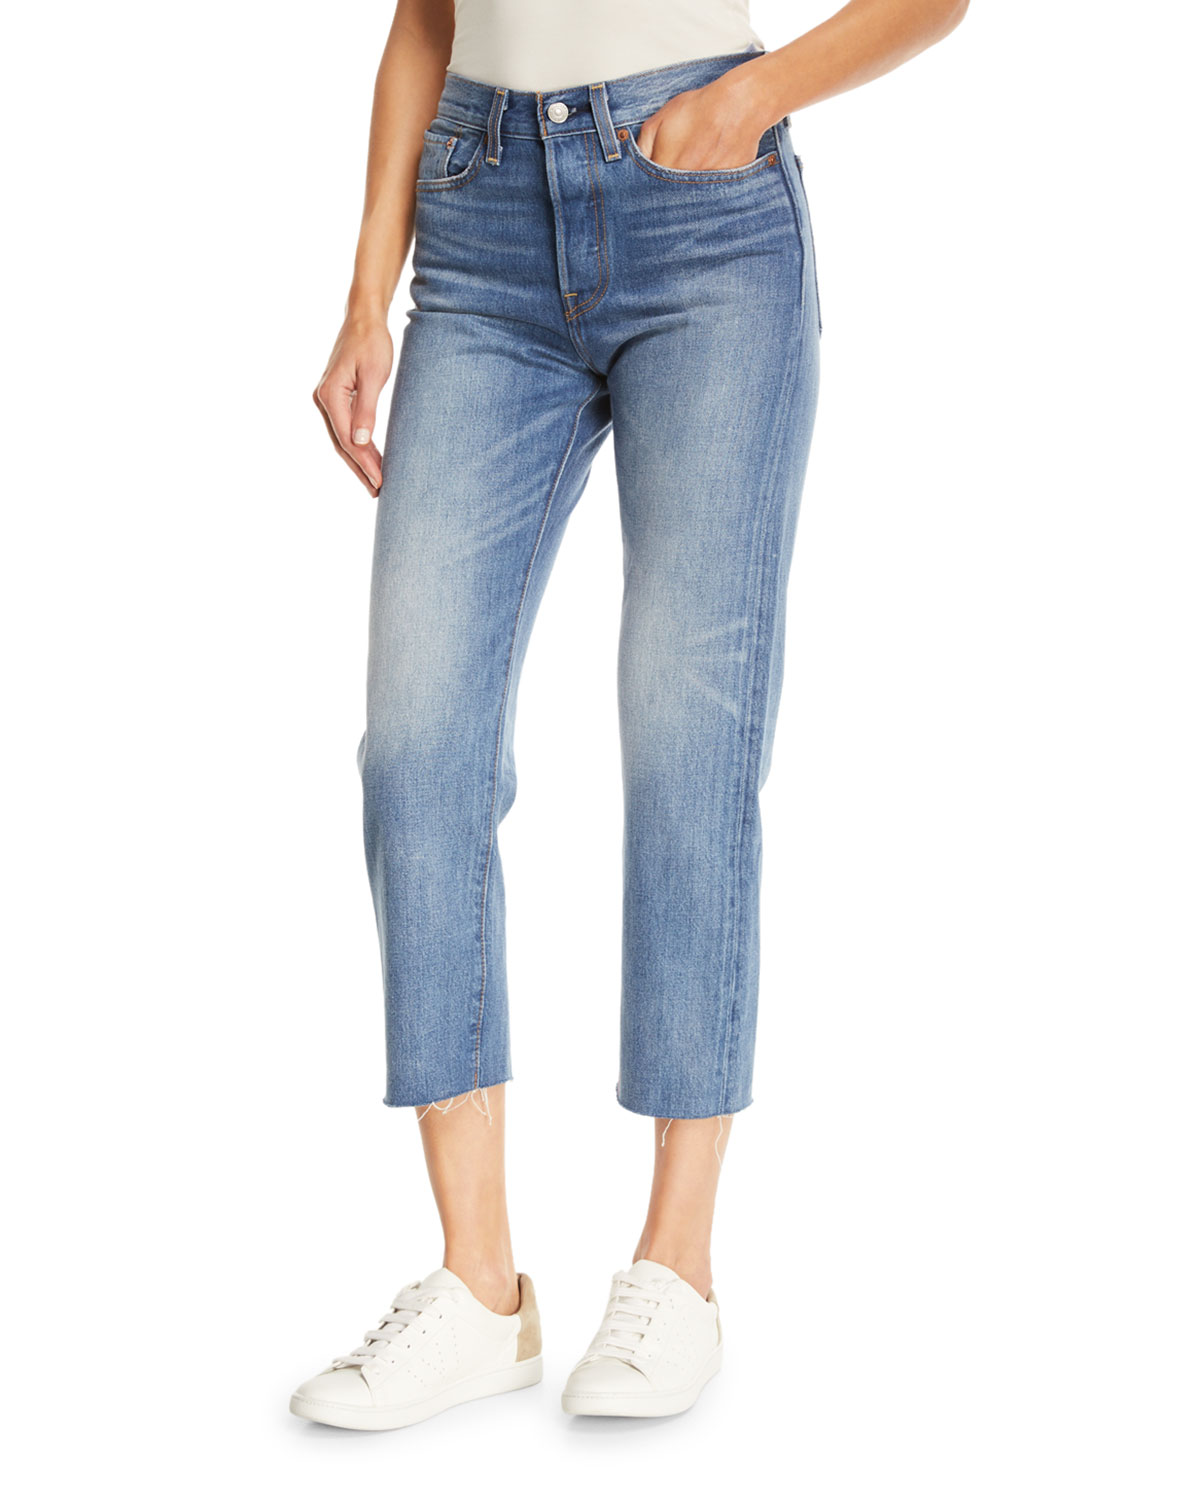 Partners in Crime Wedgie-Icon Fit Straight-Leg Jeans w/ Raw-Edge Hem